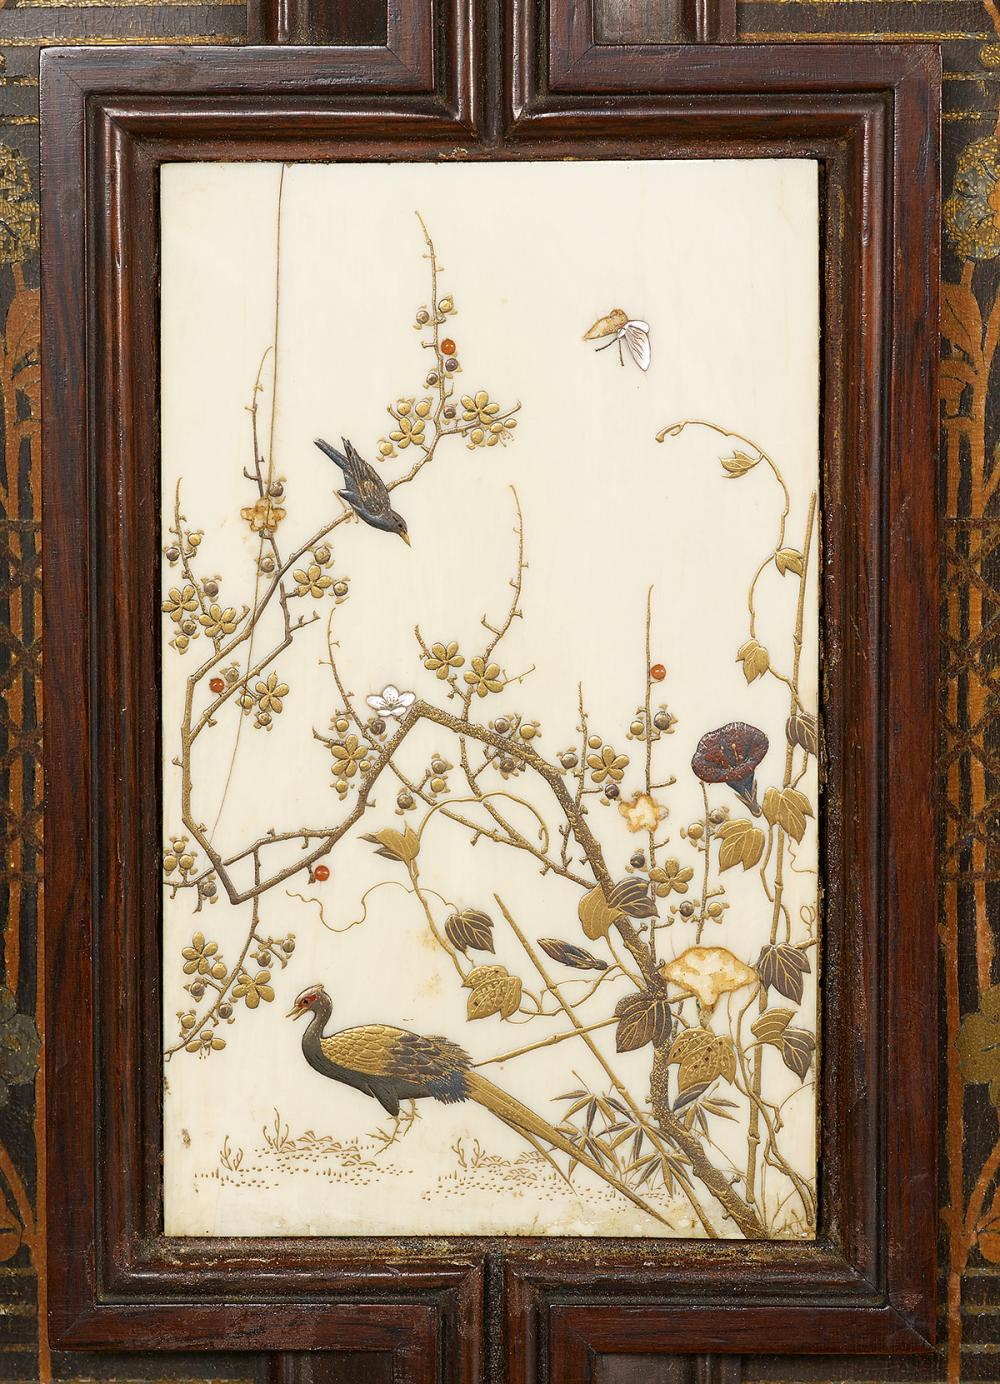 American Aesthetic Movement Rosewood Cabinet, Attributed to Pottier & Stymus, New York